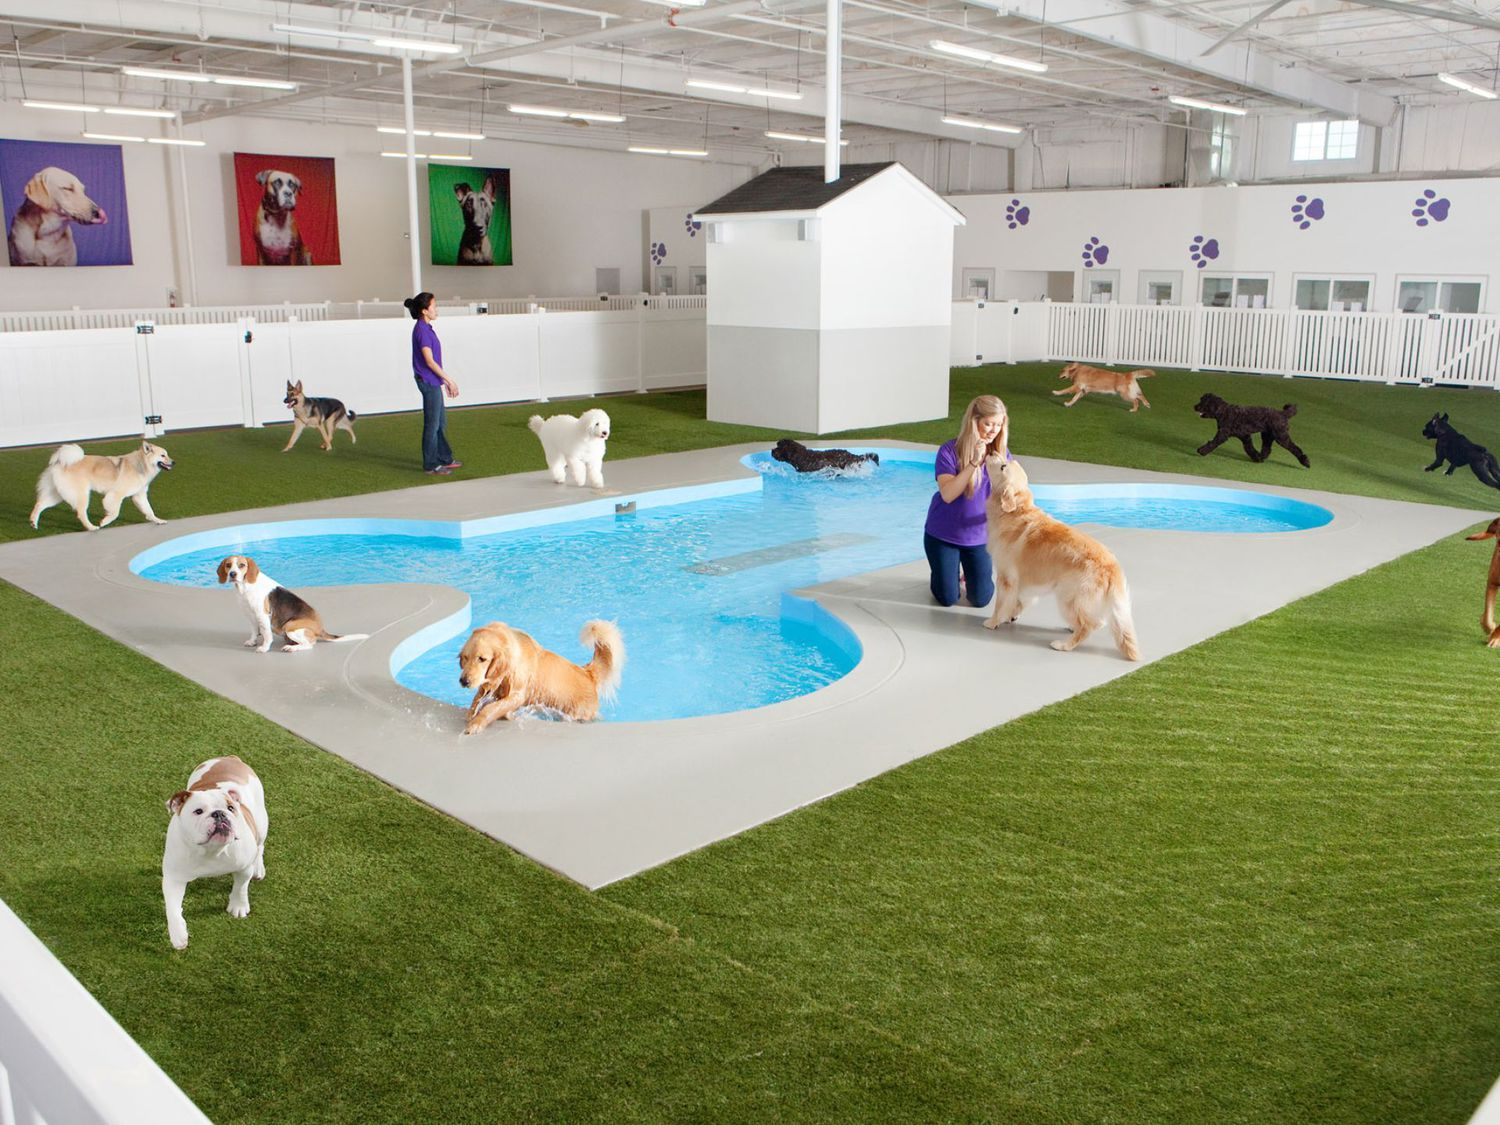 This undated artist rendering courtesy of ARK Development shows Paradise 4 Paws, a holding area for dogs in a new luxury animal terminal planned for New York's JFK Airport.